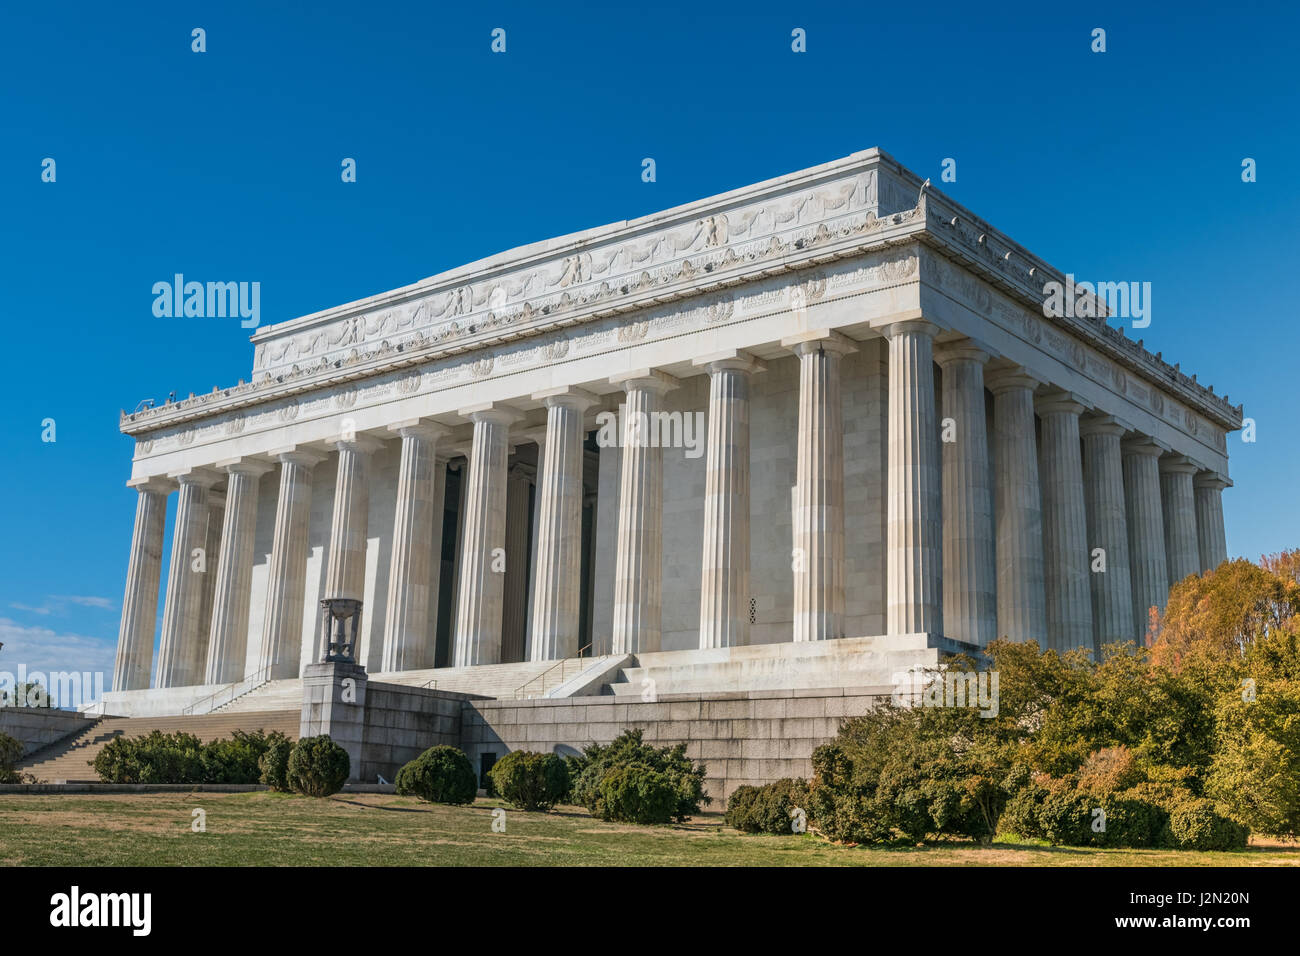 martin luther king lincoln memorial stock photos martin luther king lincoln memorial stock. Black Bedroom Furniture Sets. Home Design Ideas